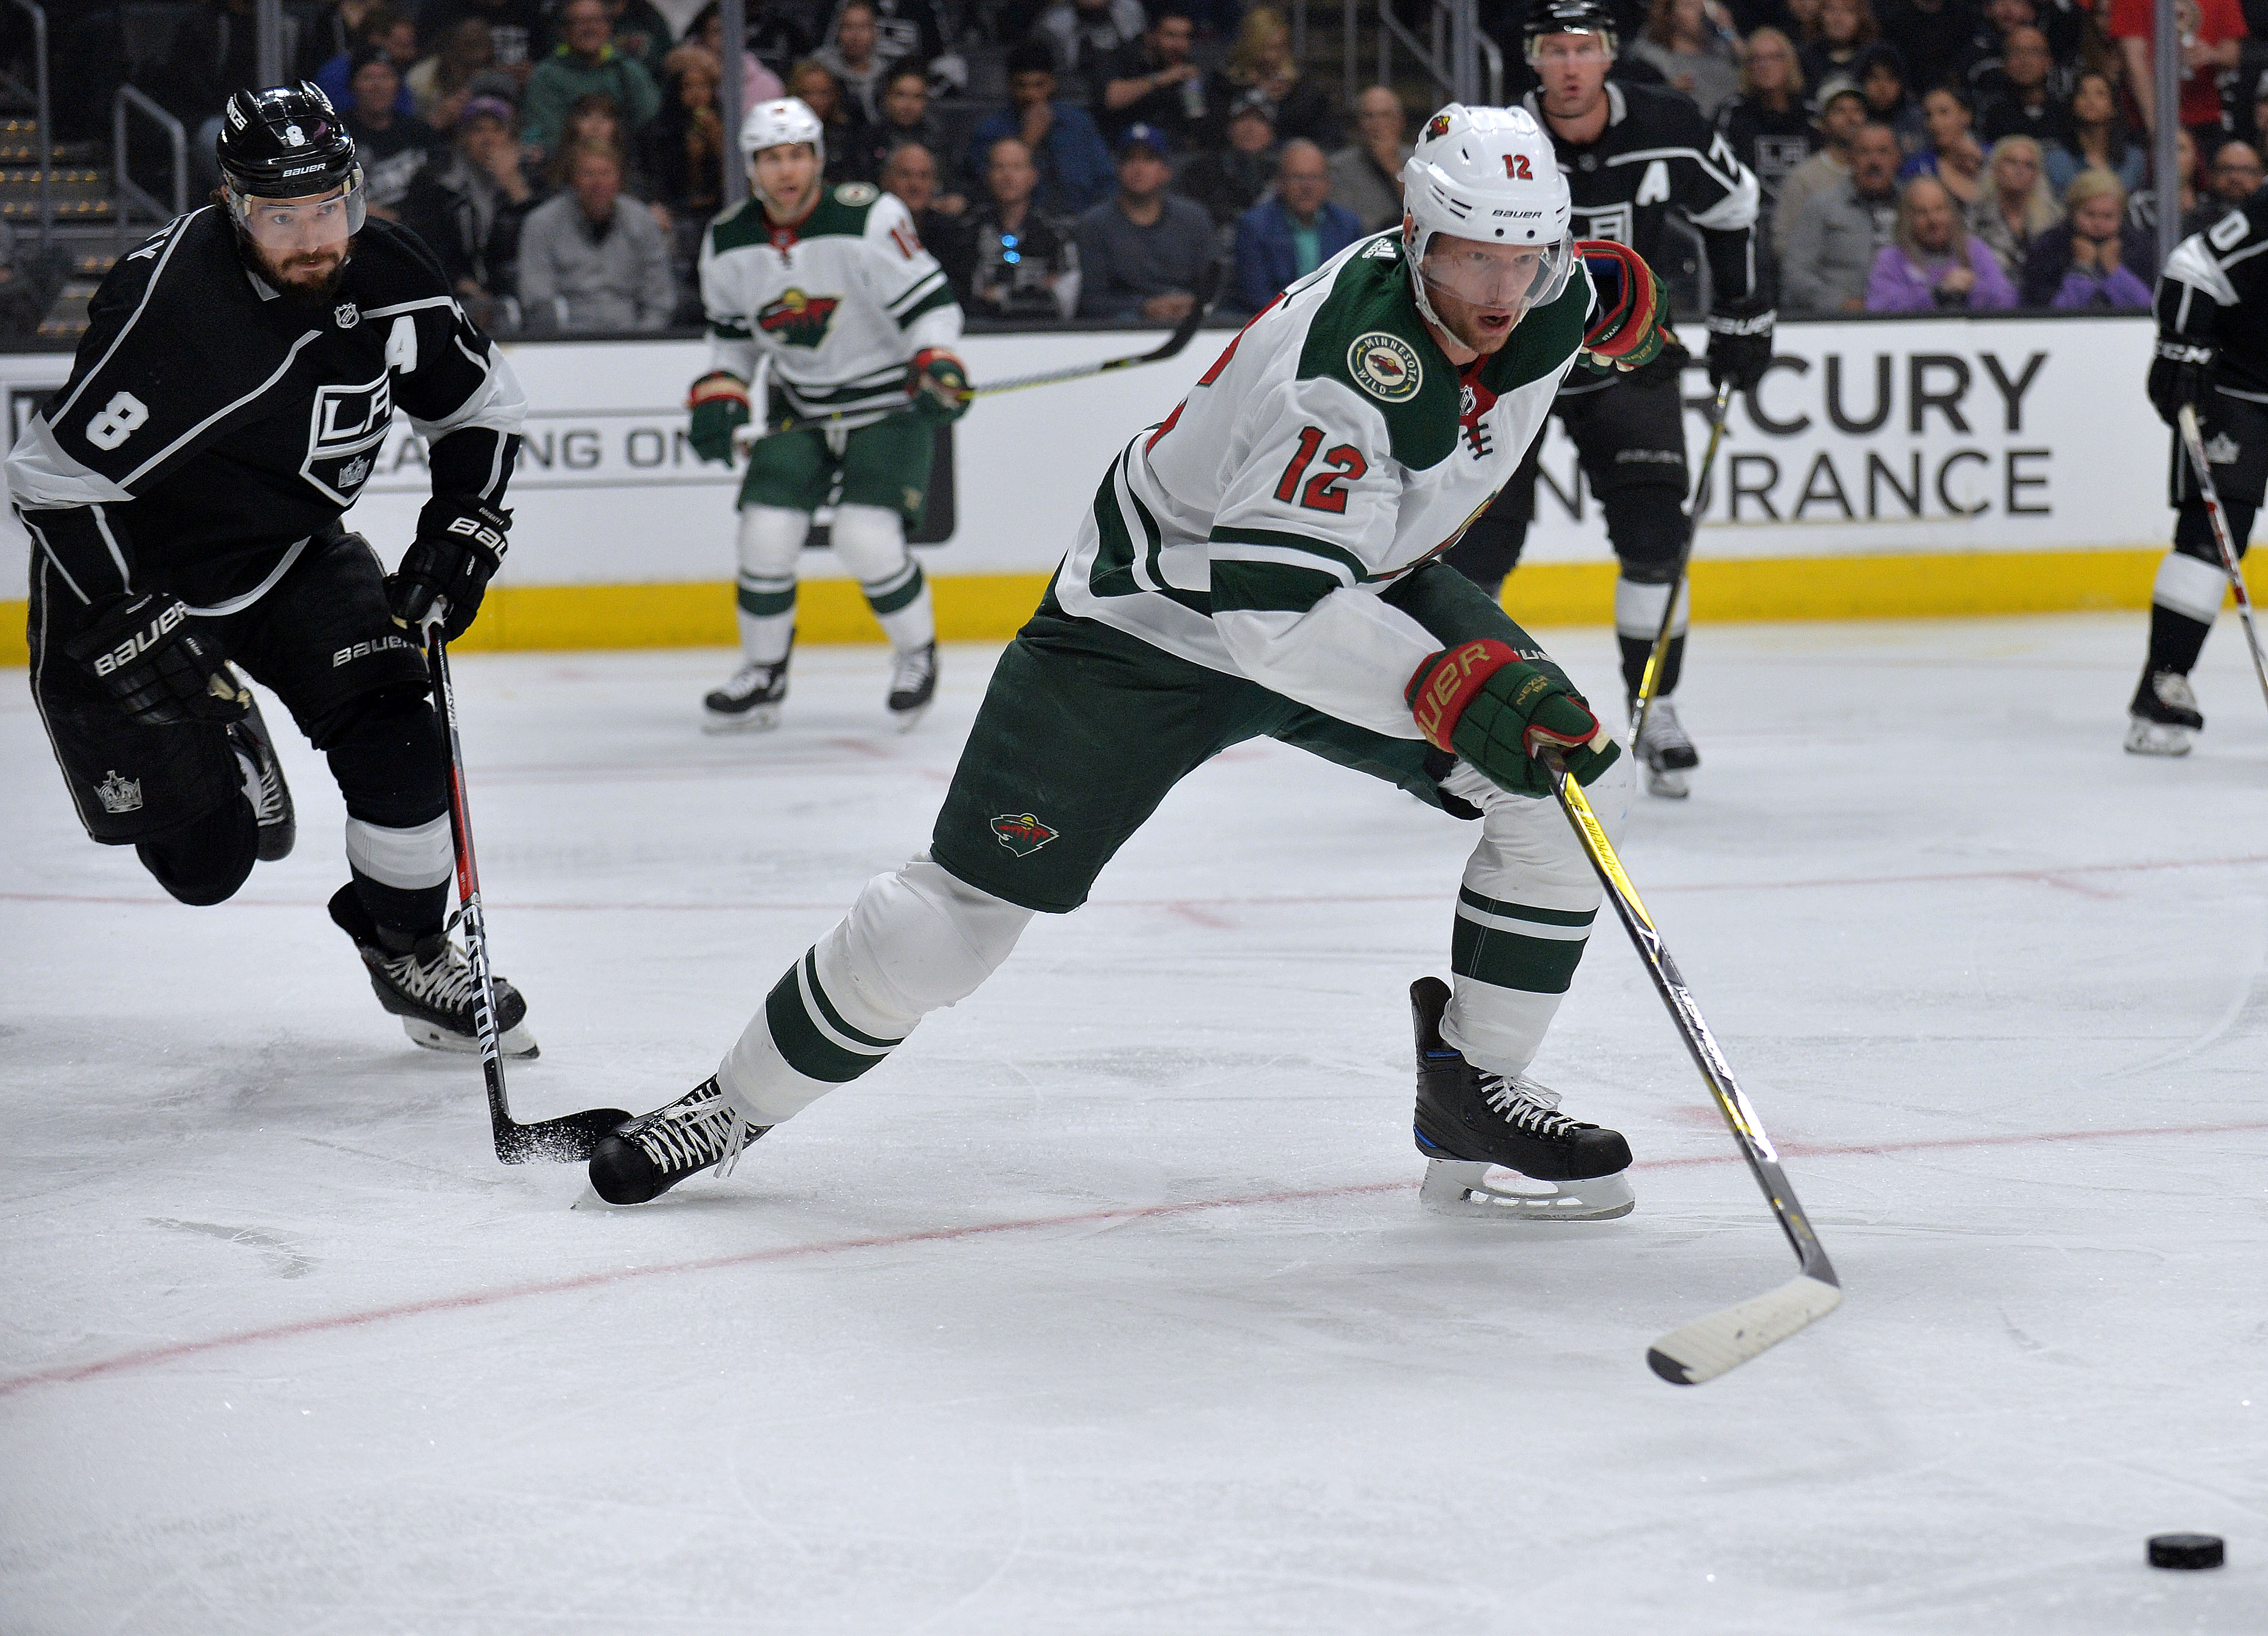 Dubnyk and Late Penalty Kill Stands Tall To Deliver 4-1 Wild Victory Over Los Angeles